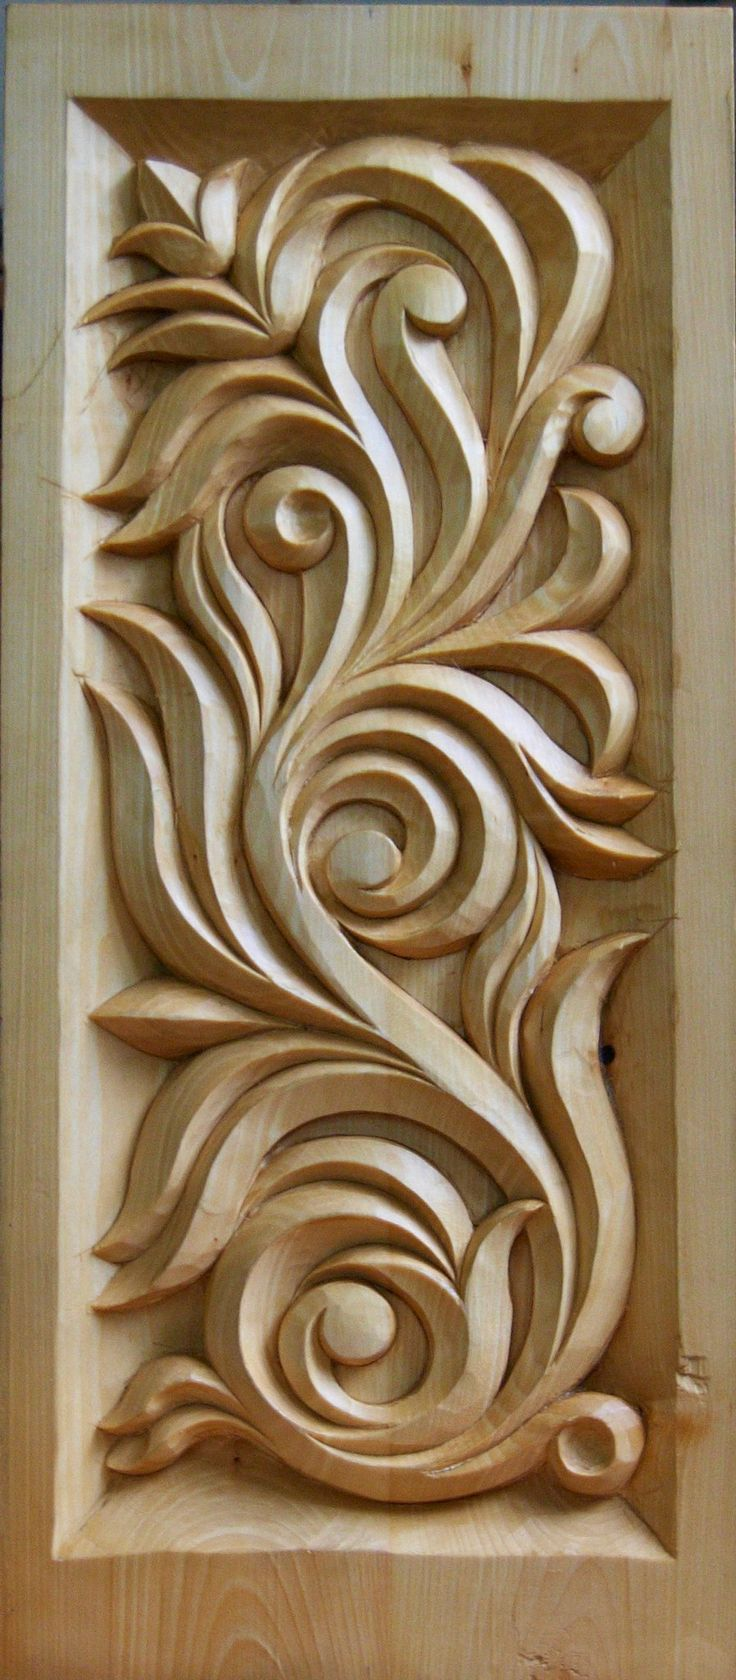 wood carving by ~polusar on deviantART